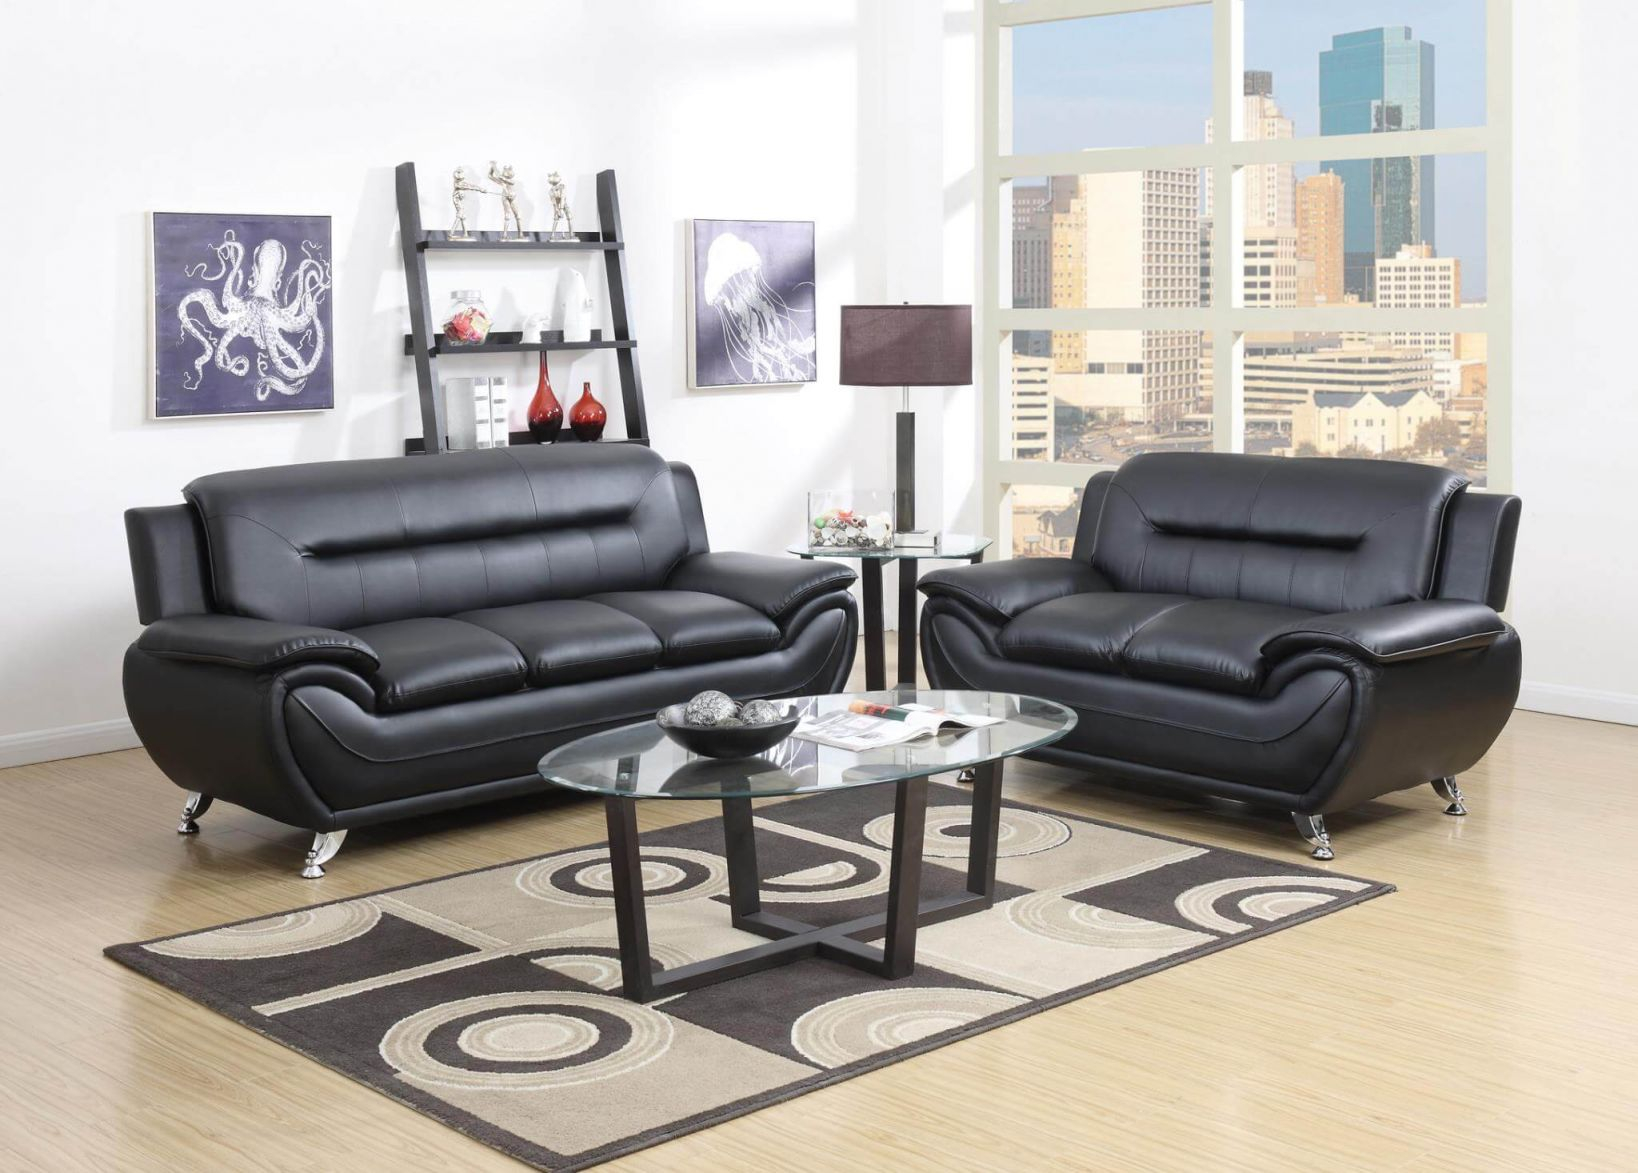 2701 Black Living Room Set for Leather Living Room Sets